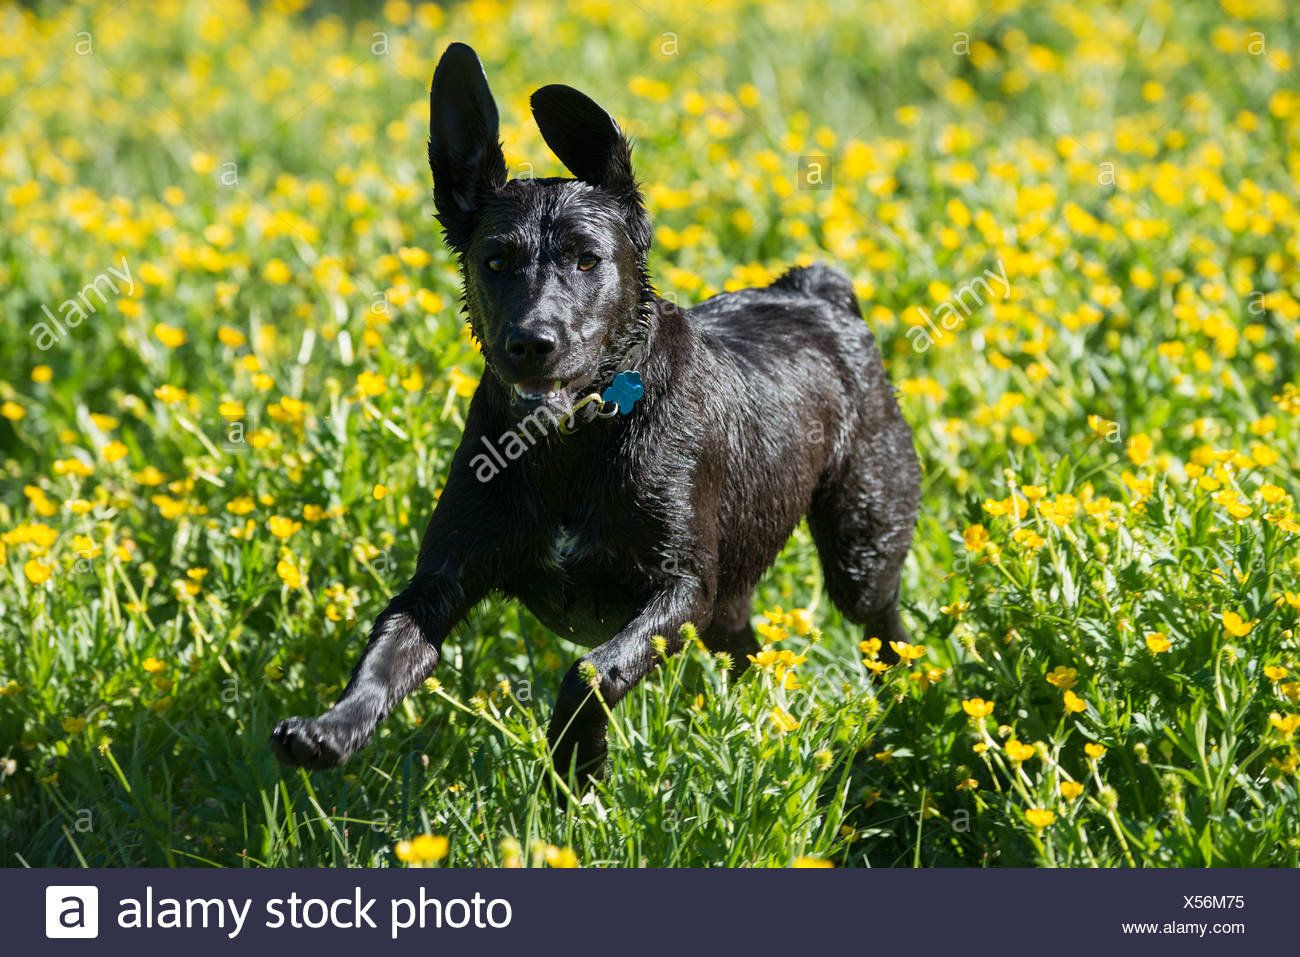 A black labrador dog running through wildflowers, with her ears flapping. - Stock Image